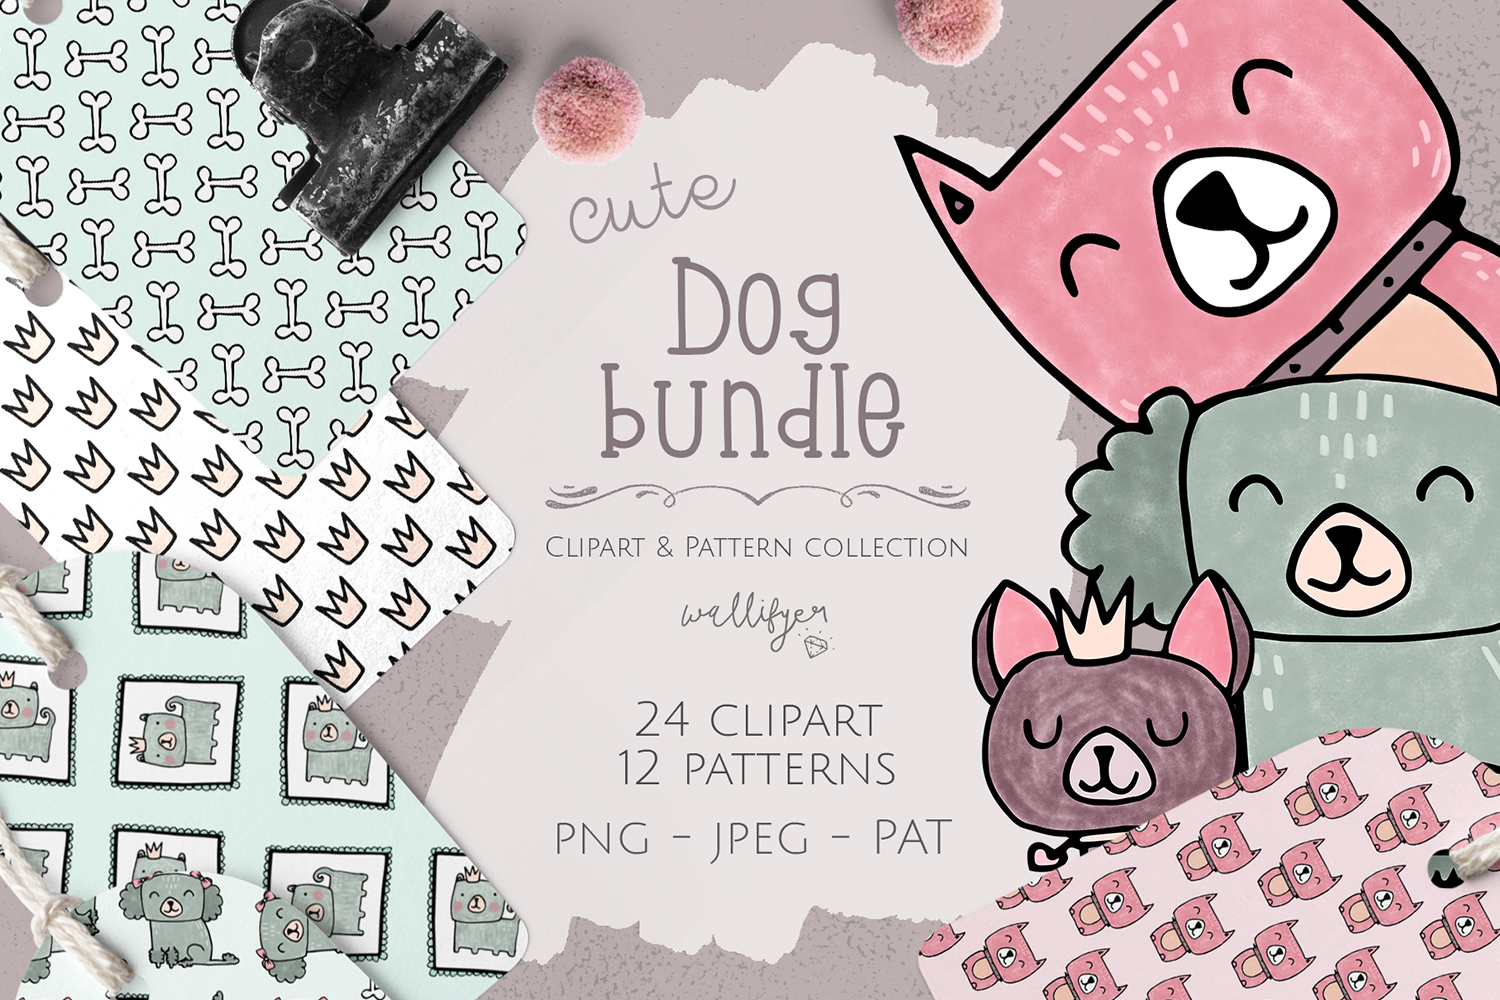 Dog clipart and patterns collection example image 1